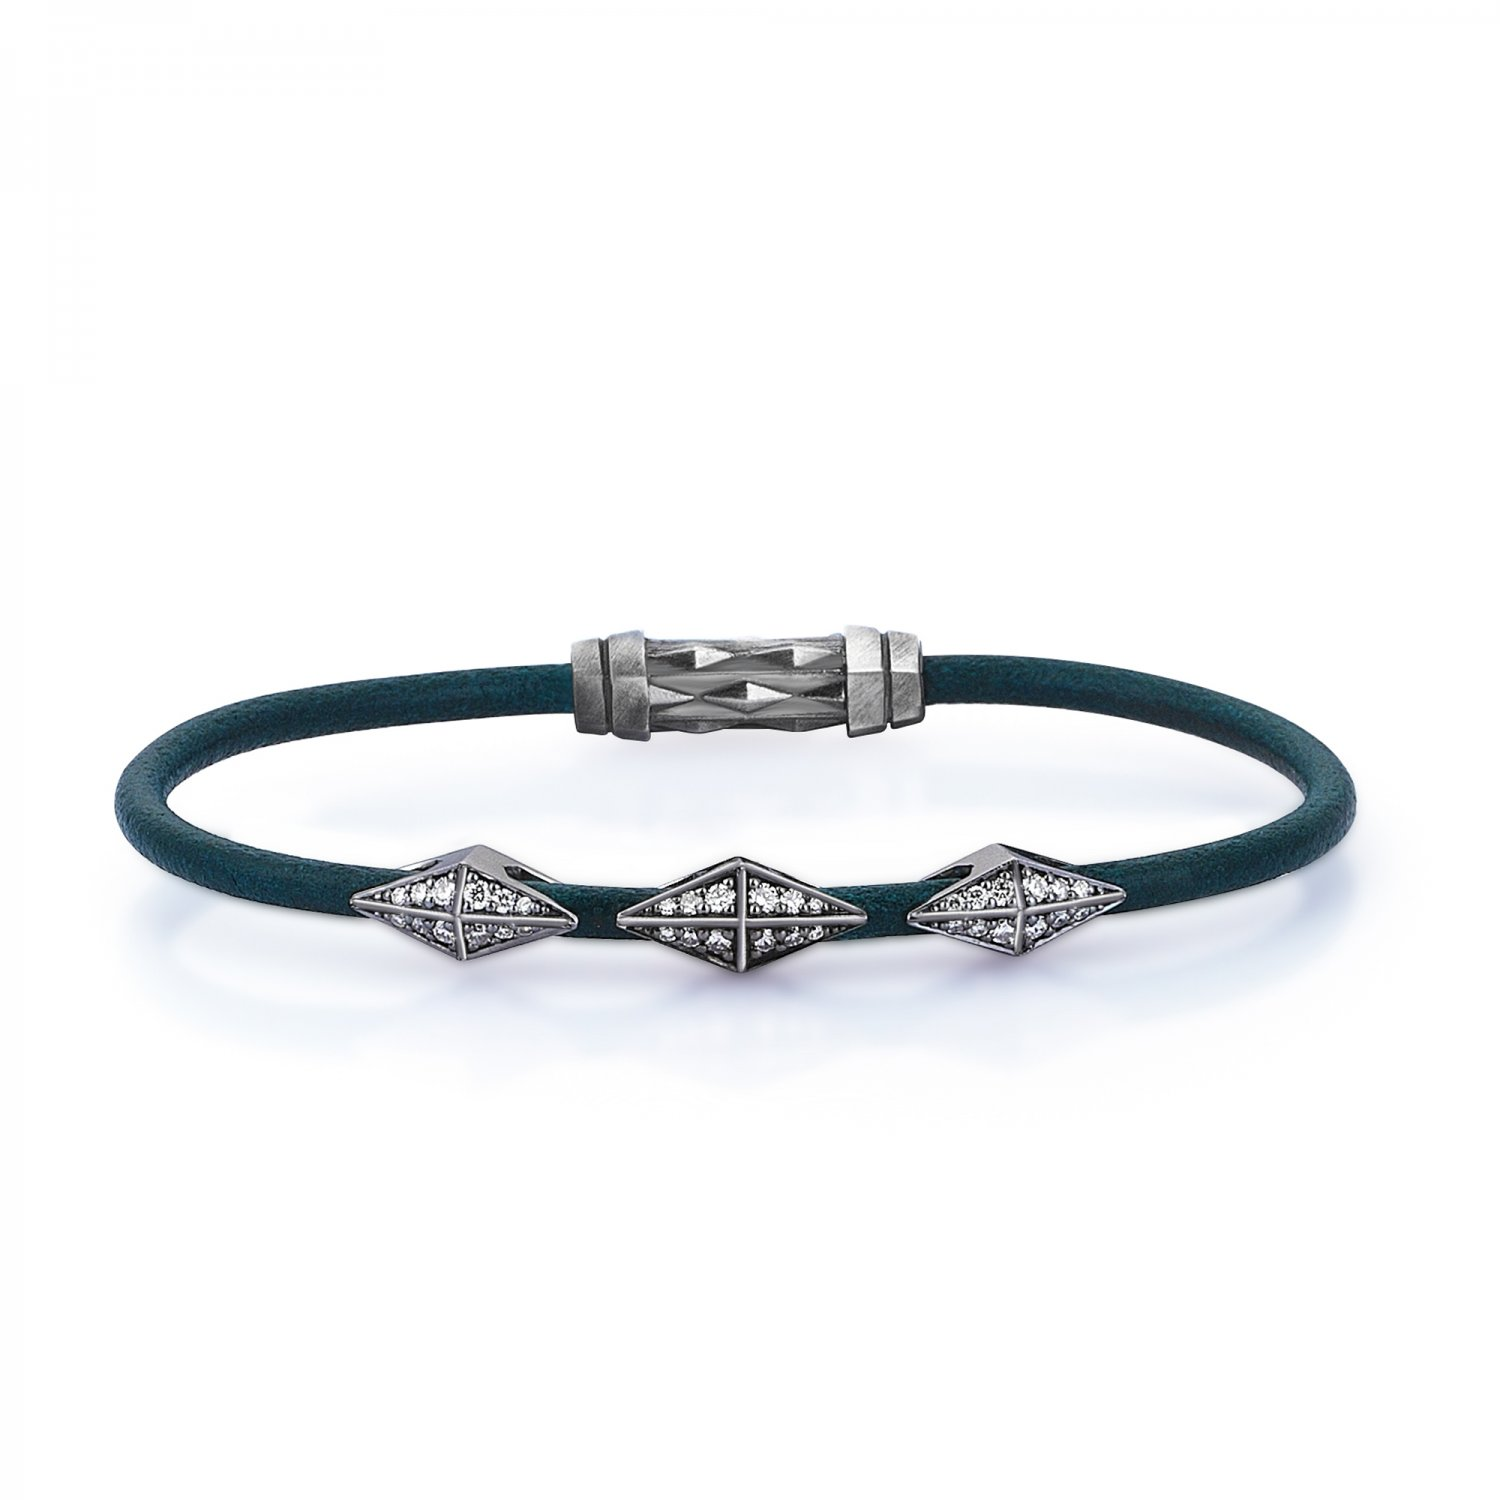 Single Lap Natural Turquoise Leather Iconic Diamondback Silver Bracelet in Black Rhodium with Full Diamonds